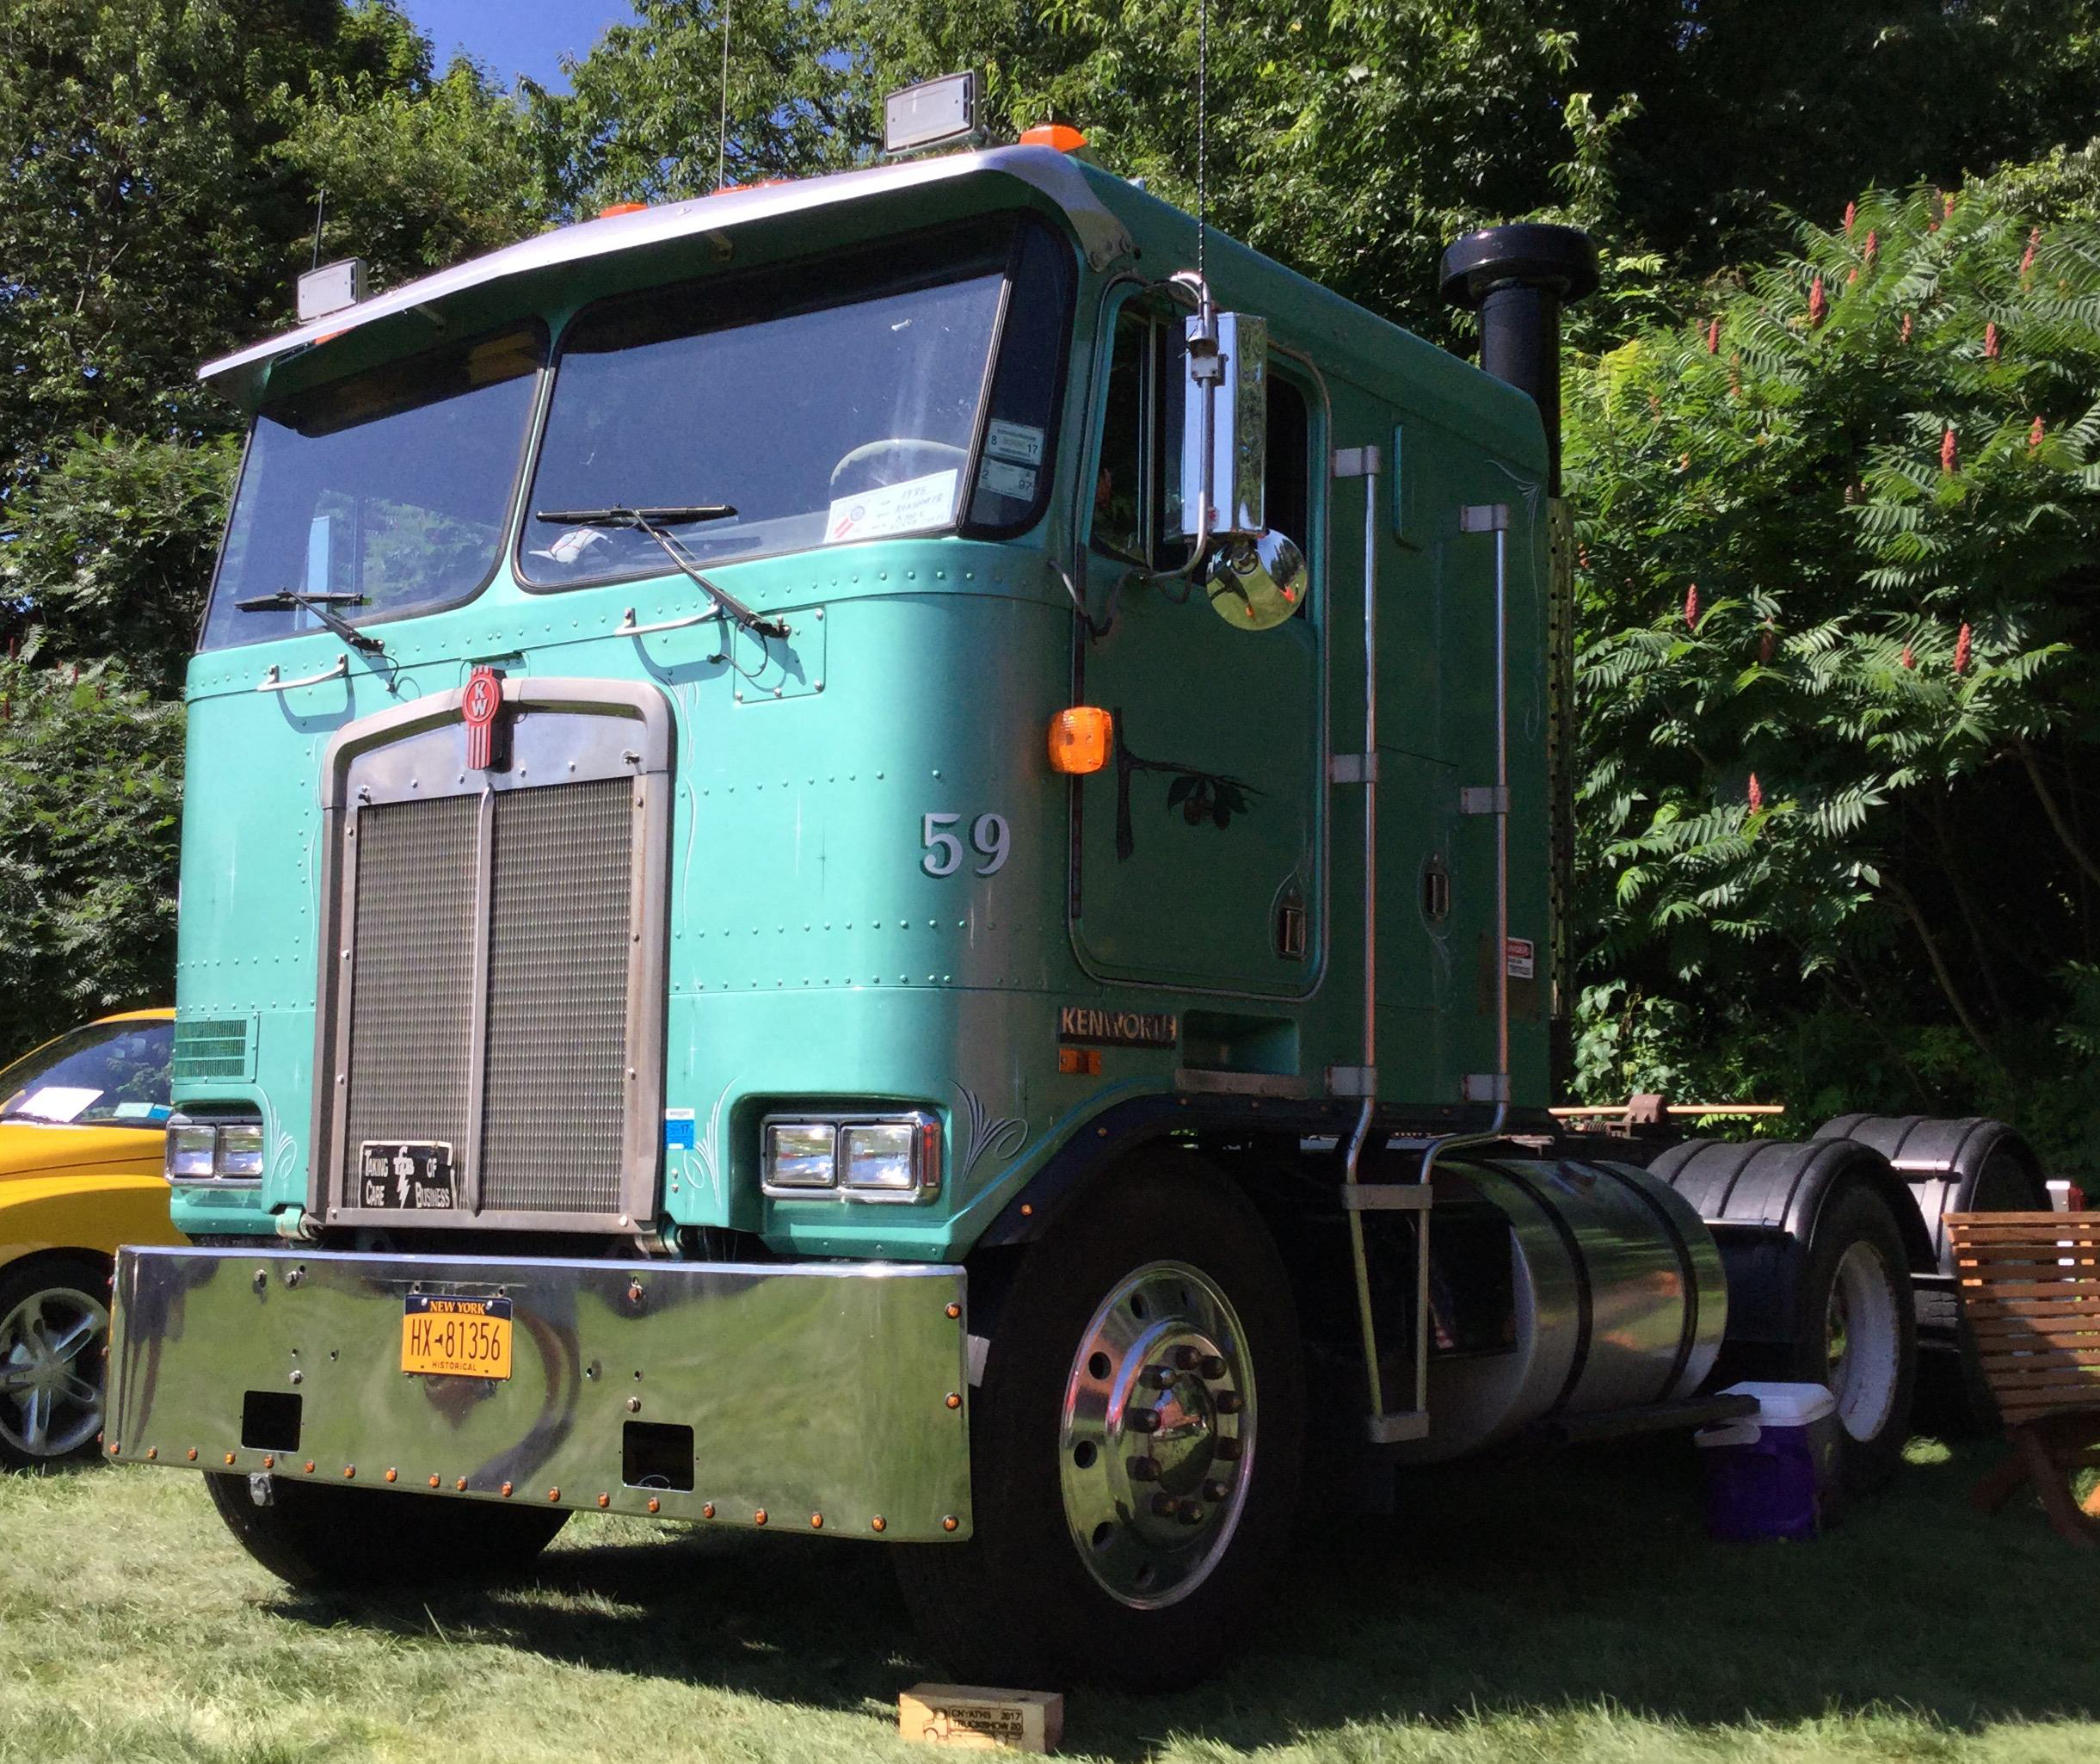 Central New York American Truck Historical Society Gathers